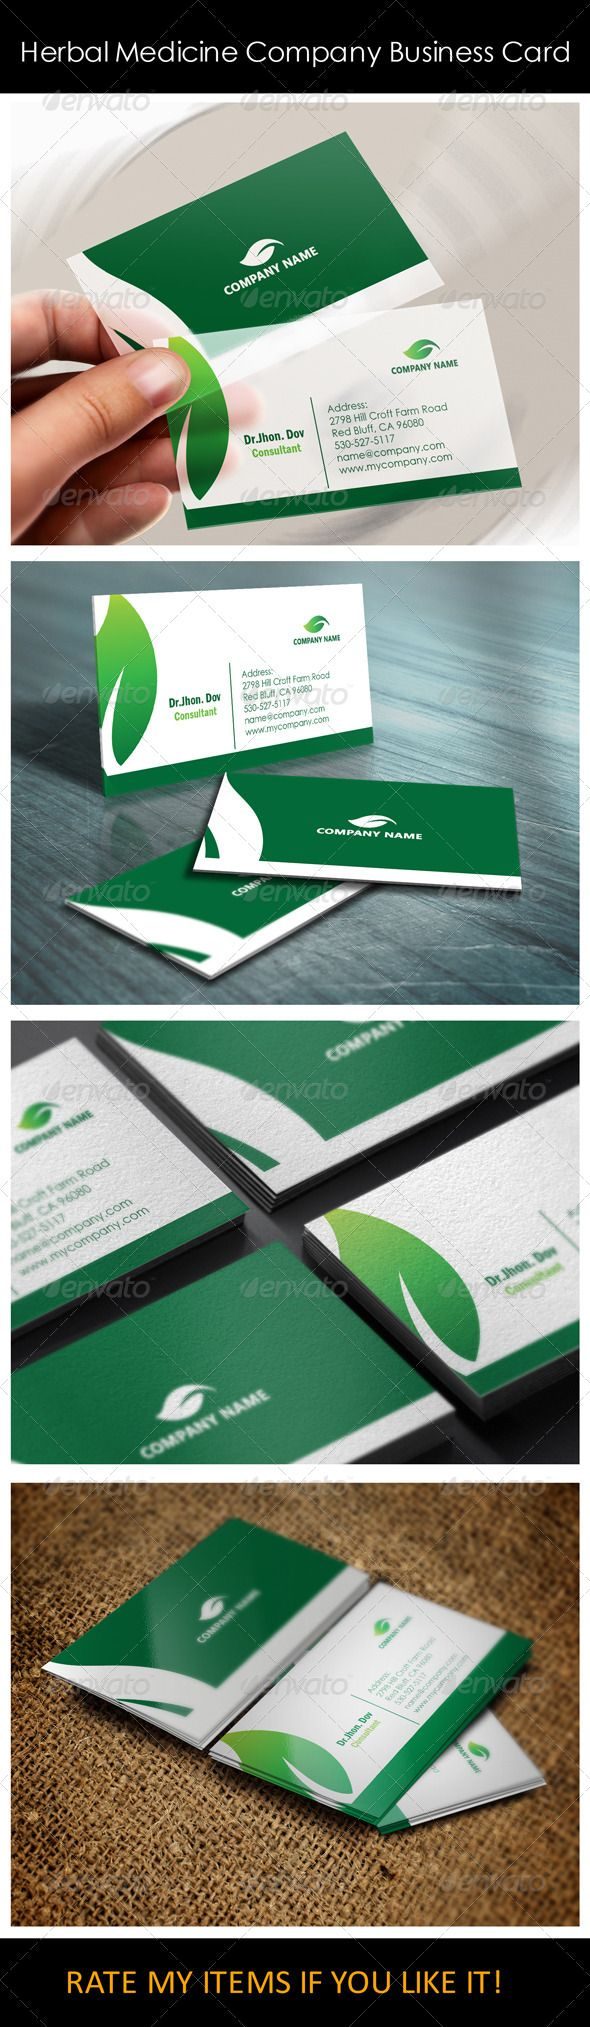 26 best bc pharmacy images on pinterest advertising corporate herbal medicine company business card templates magicingreecefo Images